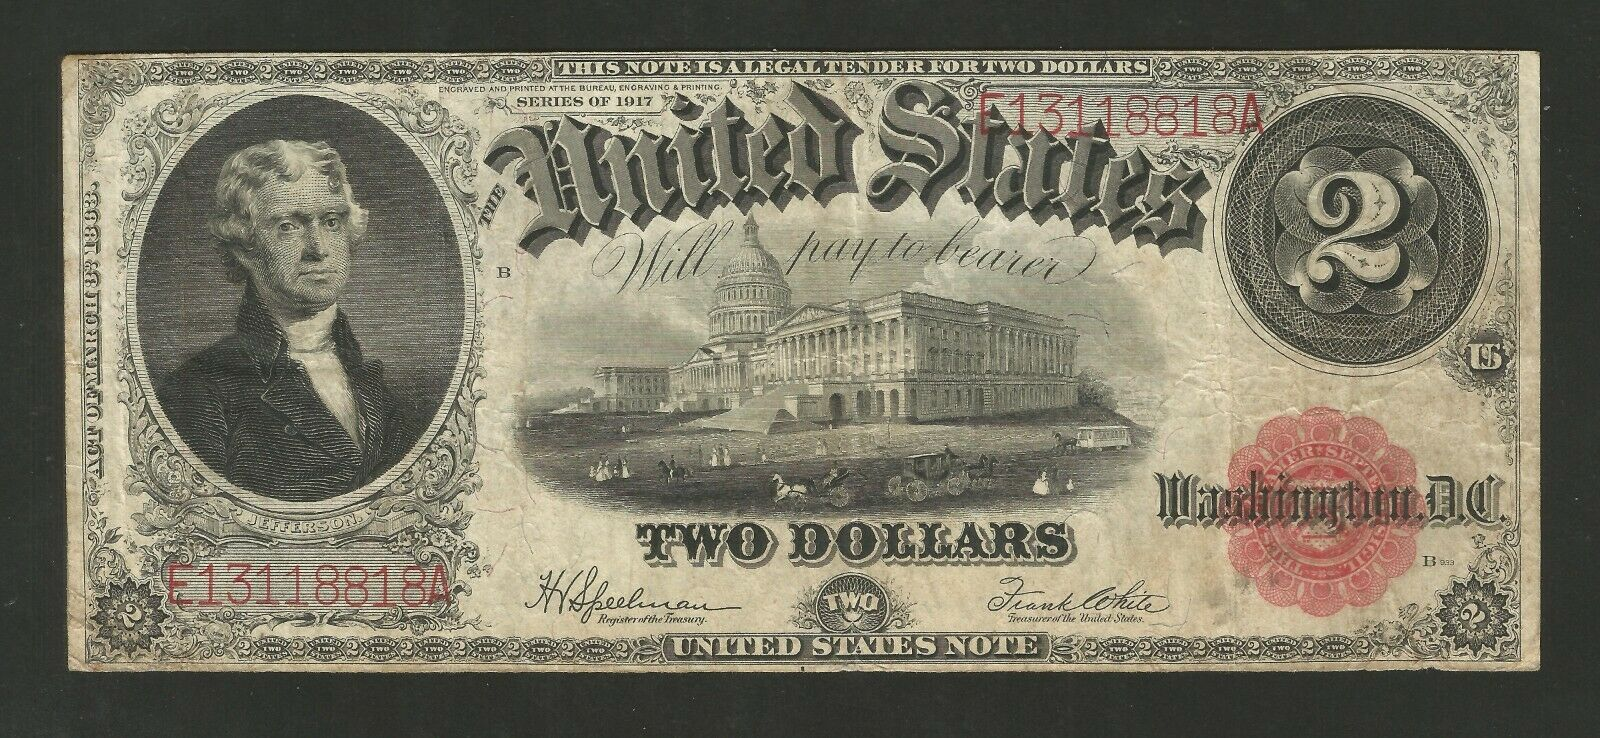 FR. 60 Two Dollars ($2) Series of 1917 United States Note - Legal Tender 1